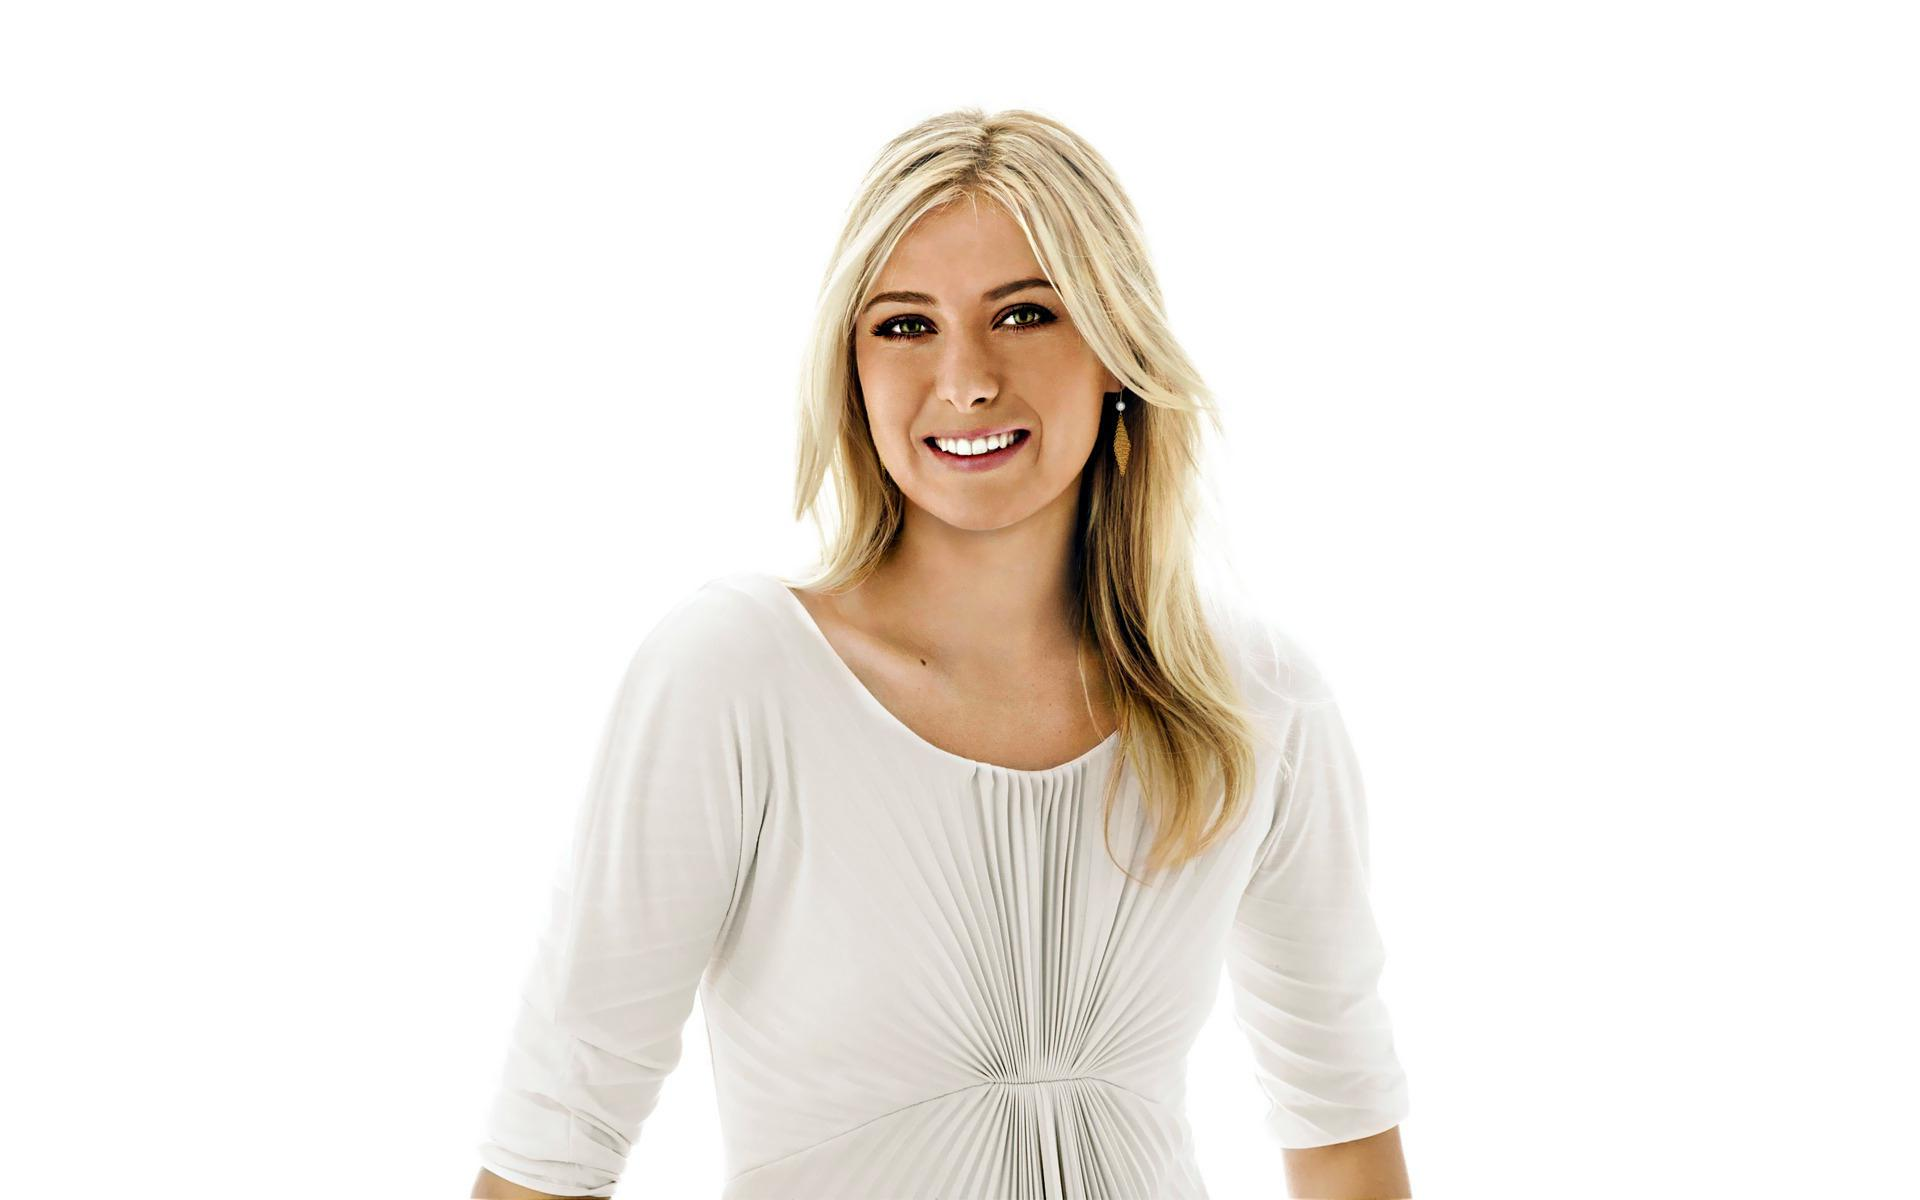 Maria Sharapova Wallpapers Desktop 1920x1200 px WallpapersExpertcom 1920x1200